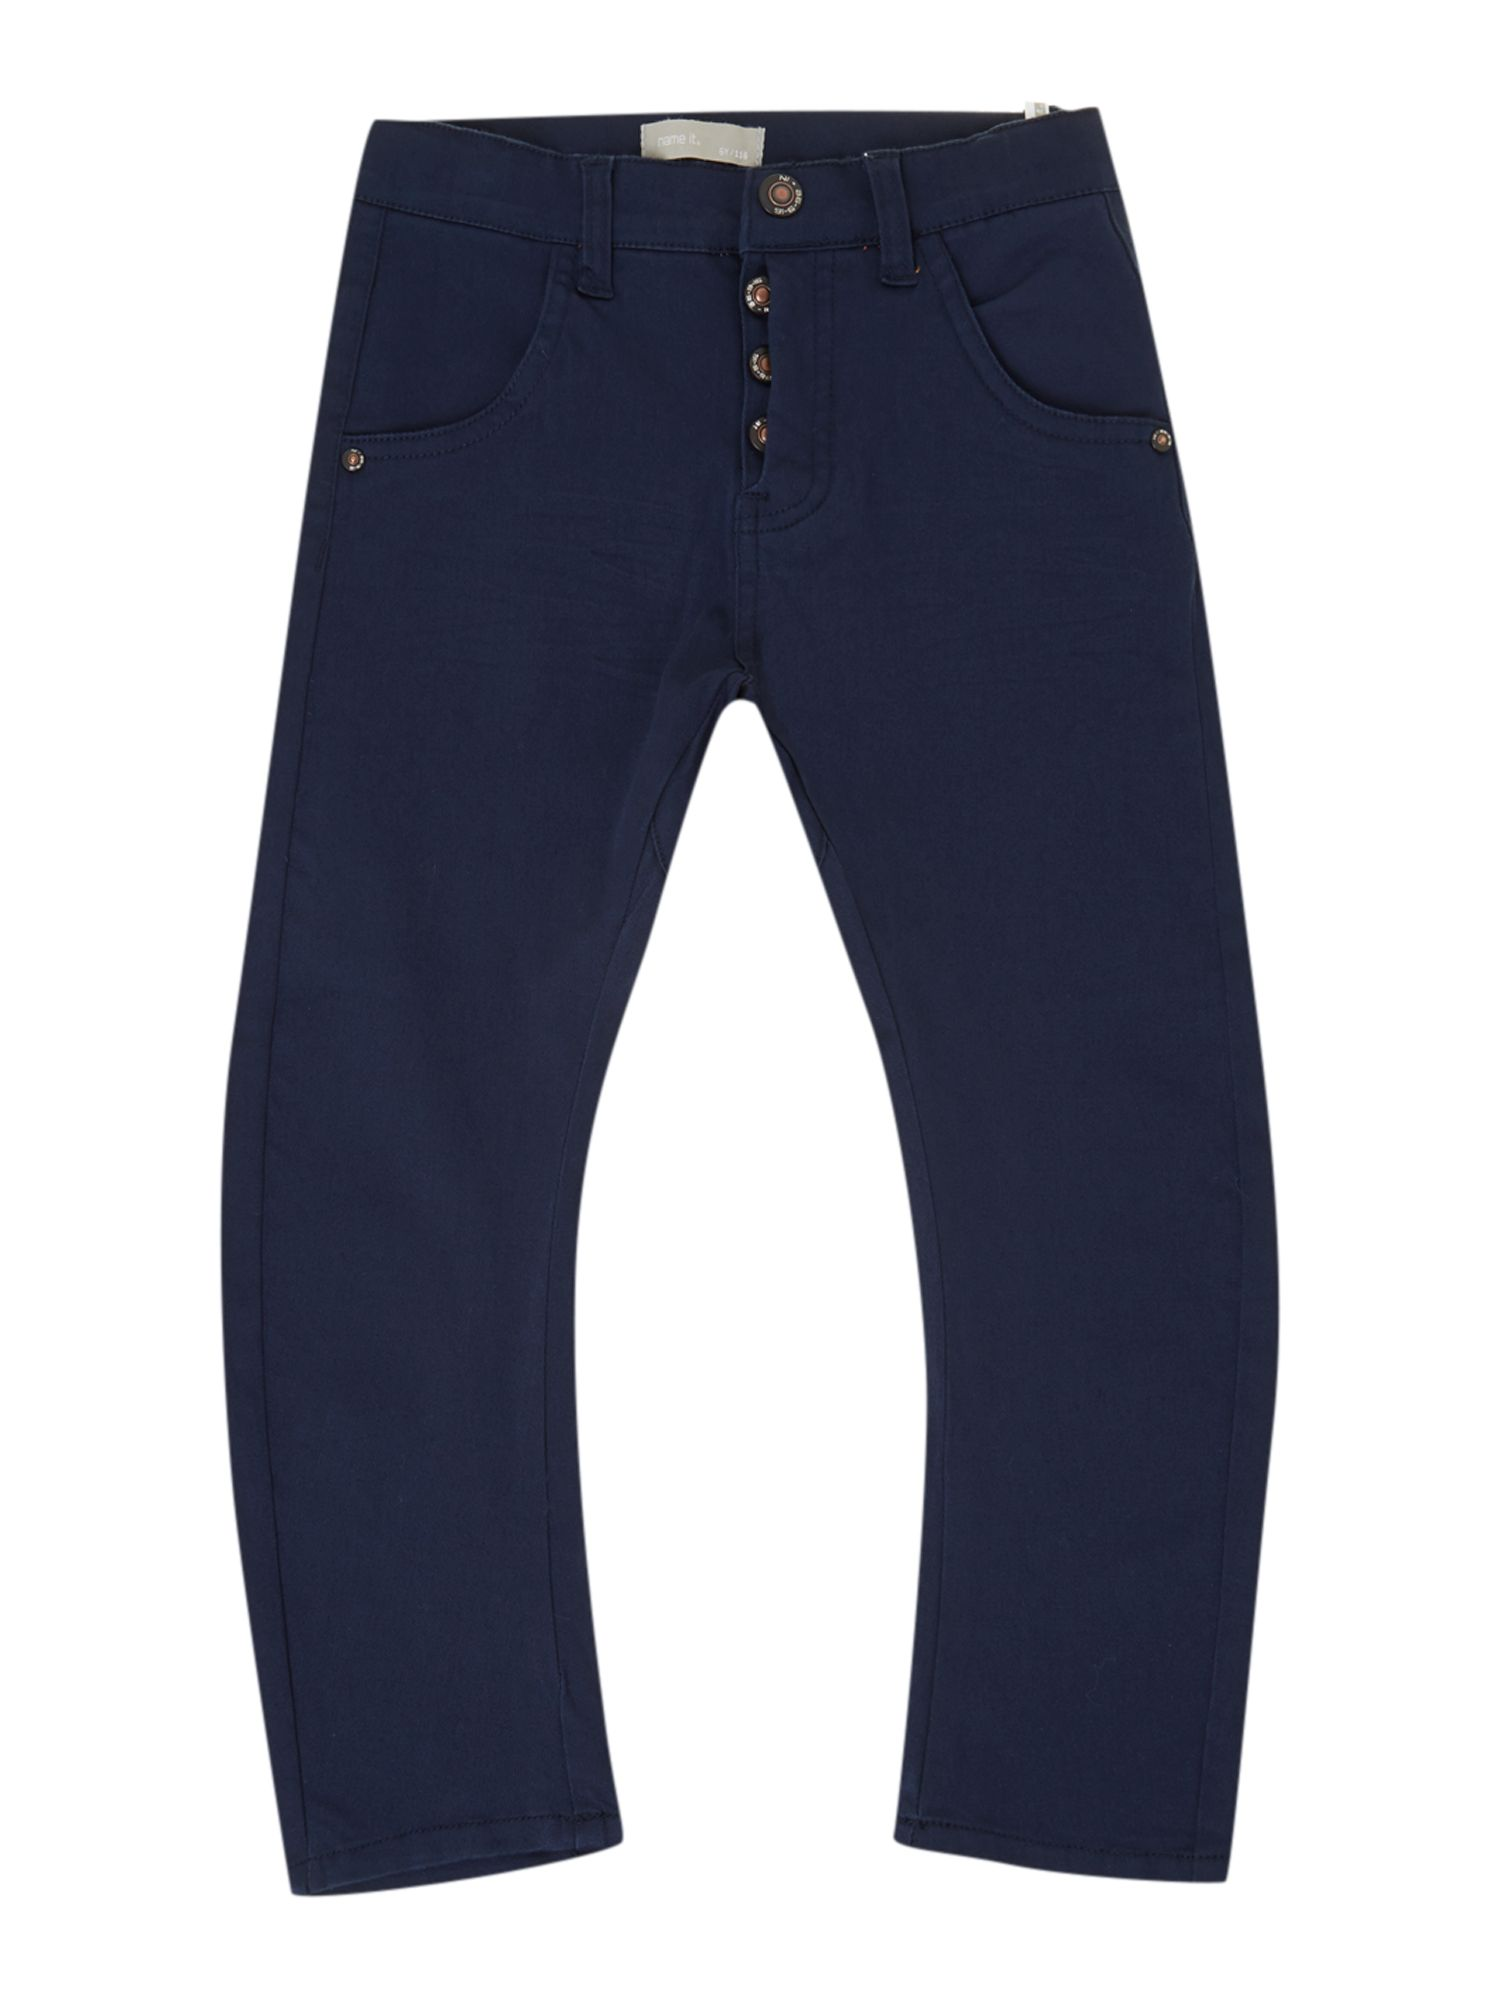 Boys anti fit chino trouser